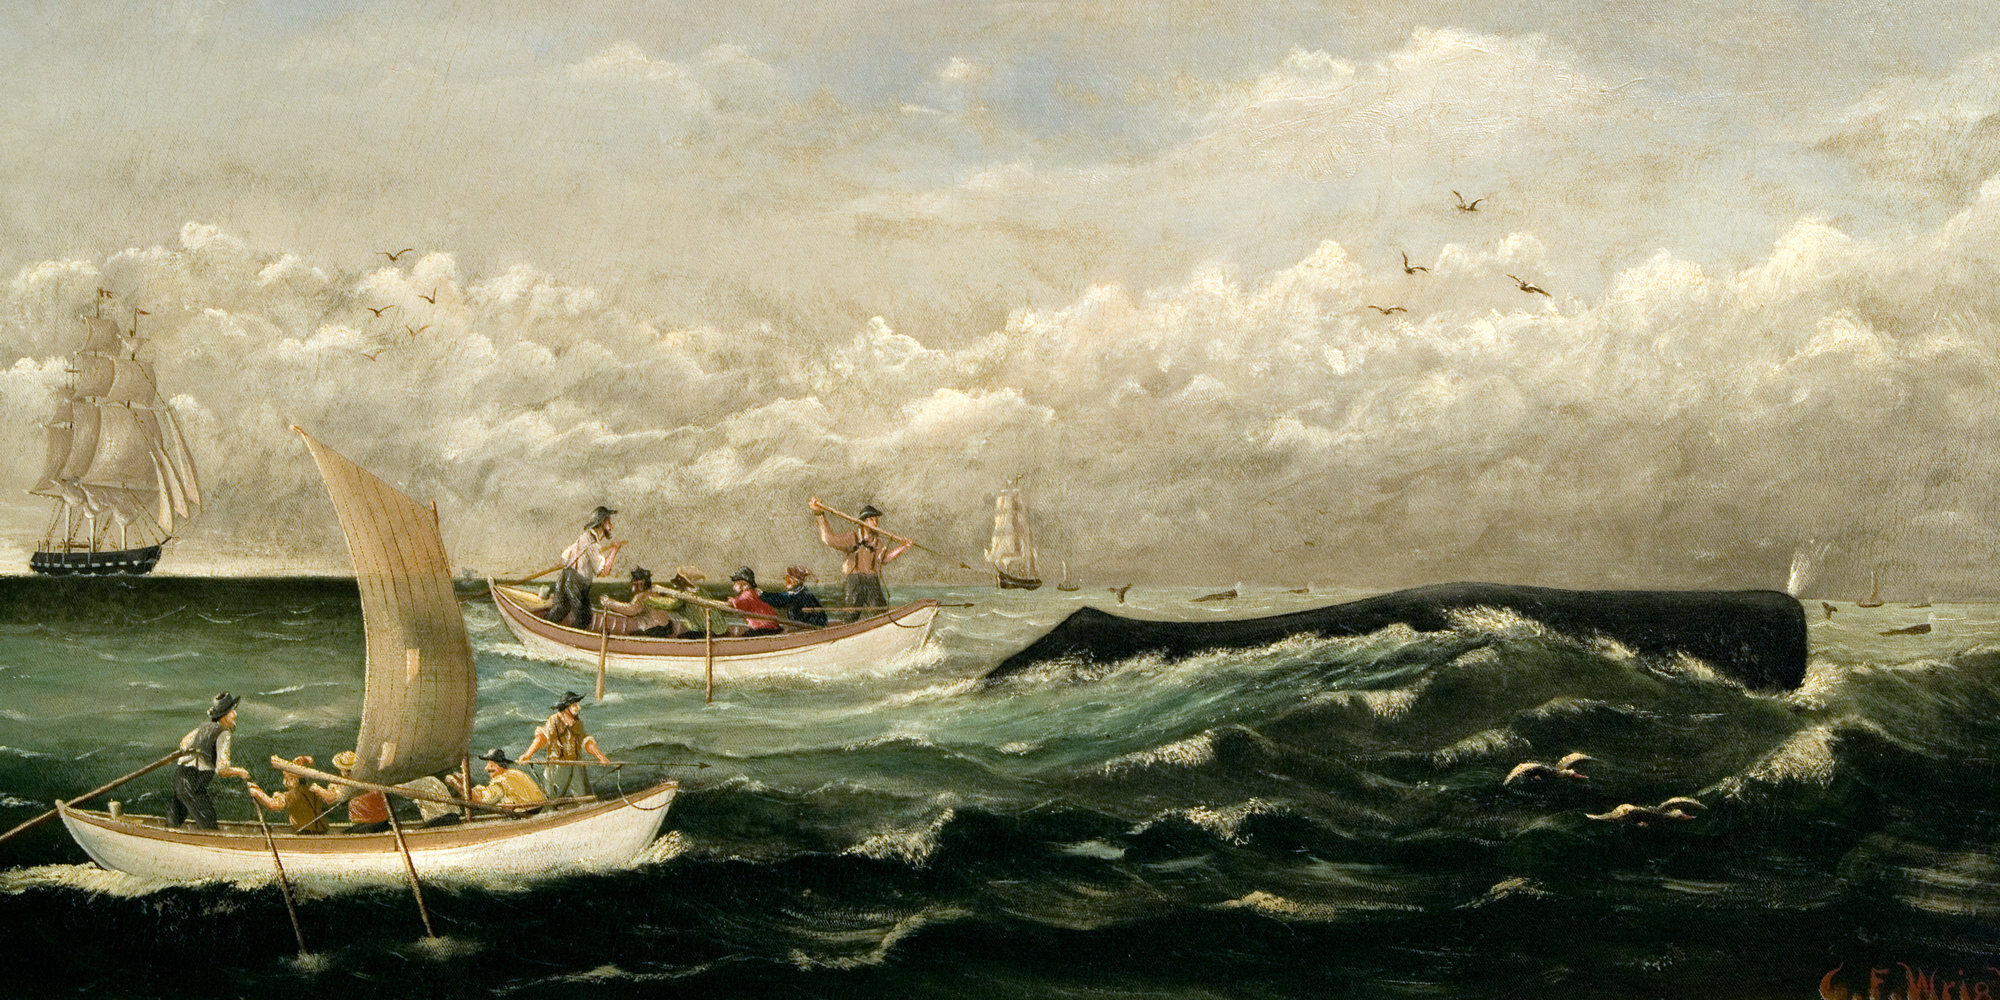 DBJ1FN New Bedford / NB Whaling National Historic Park - 'Sperm Whaling - The Chase' by CF Wright [1885]